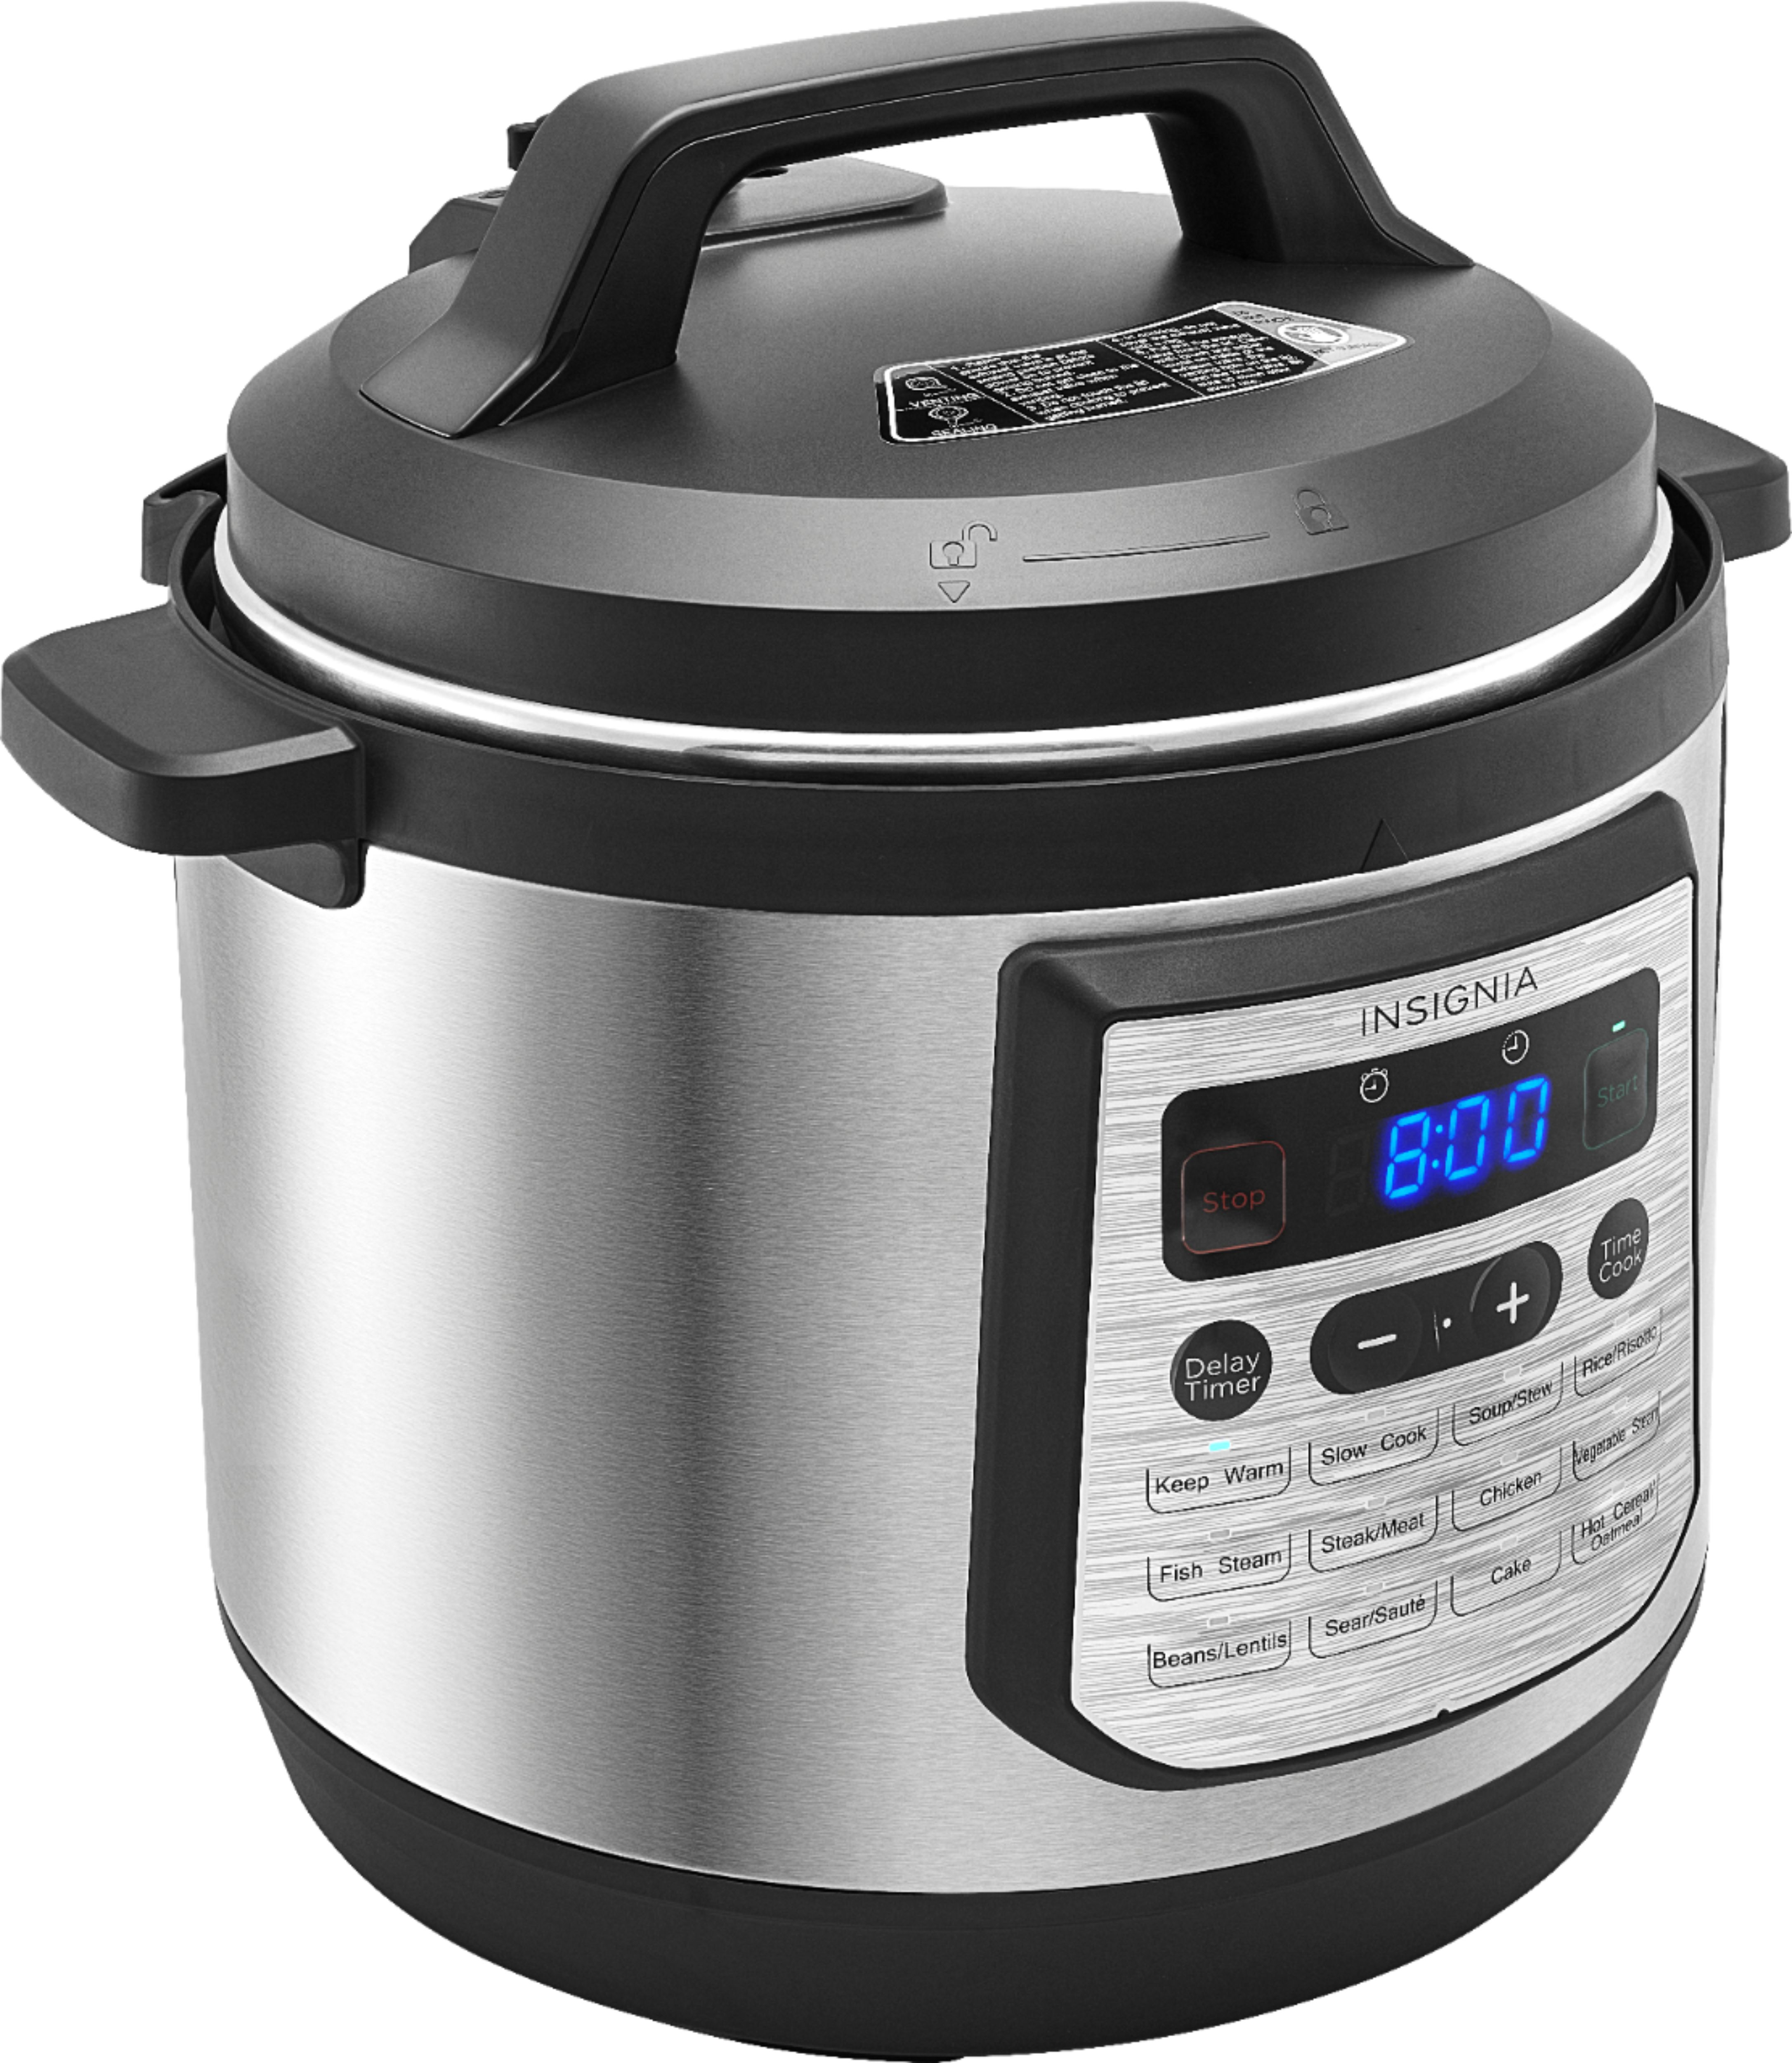 Big W Pressure Cooker Insignia 8 Quart Multi Function Pressure Cooker Stainless Steel